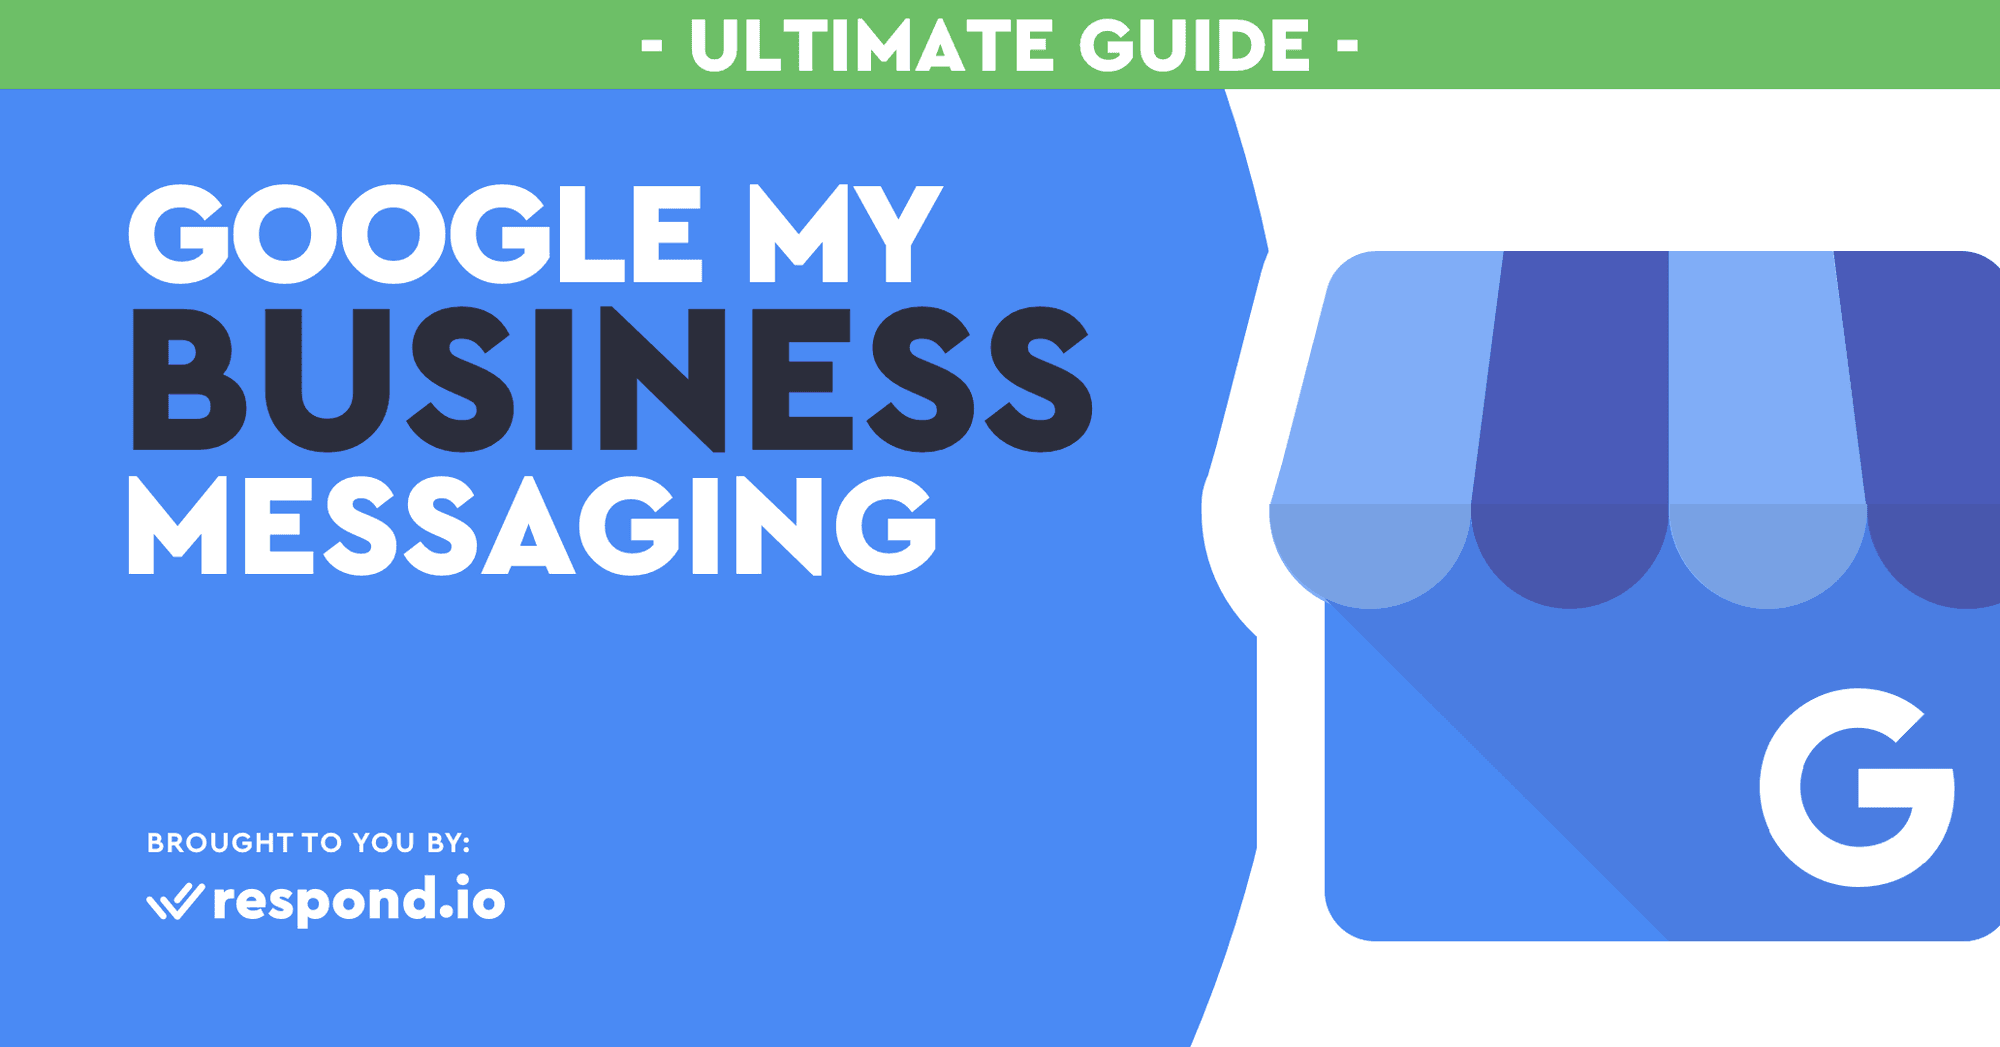 Google My Business Messaging: The Ultimate Guide